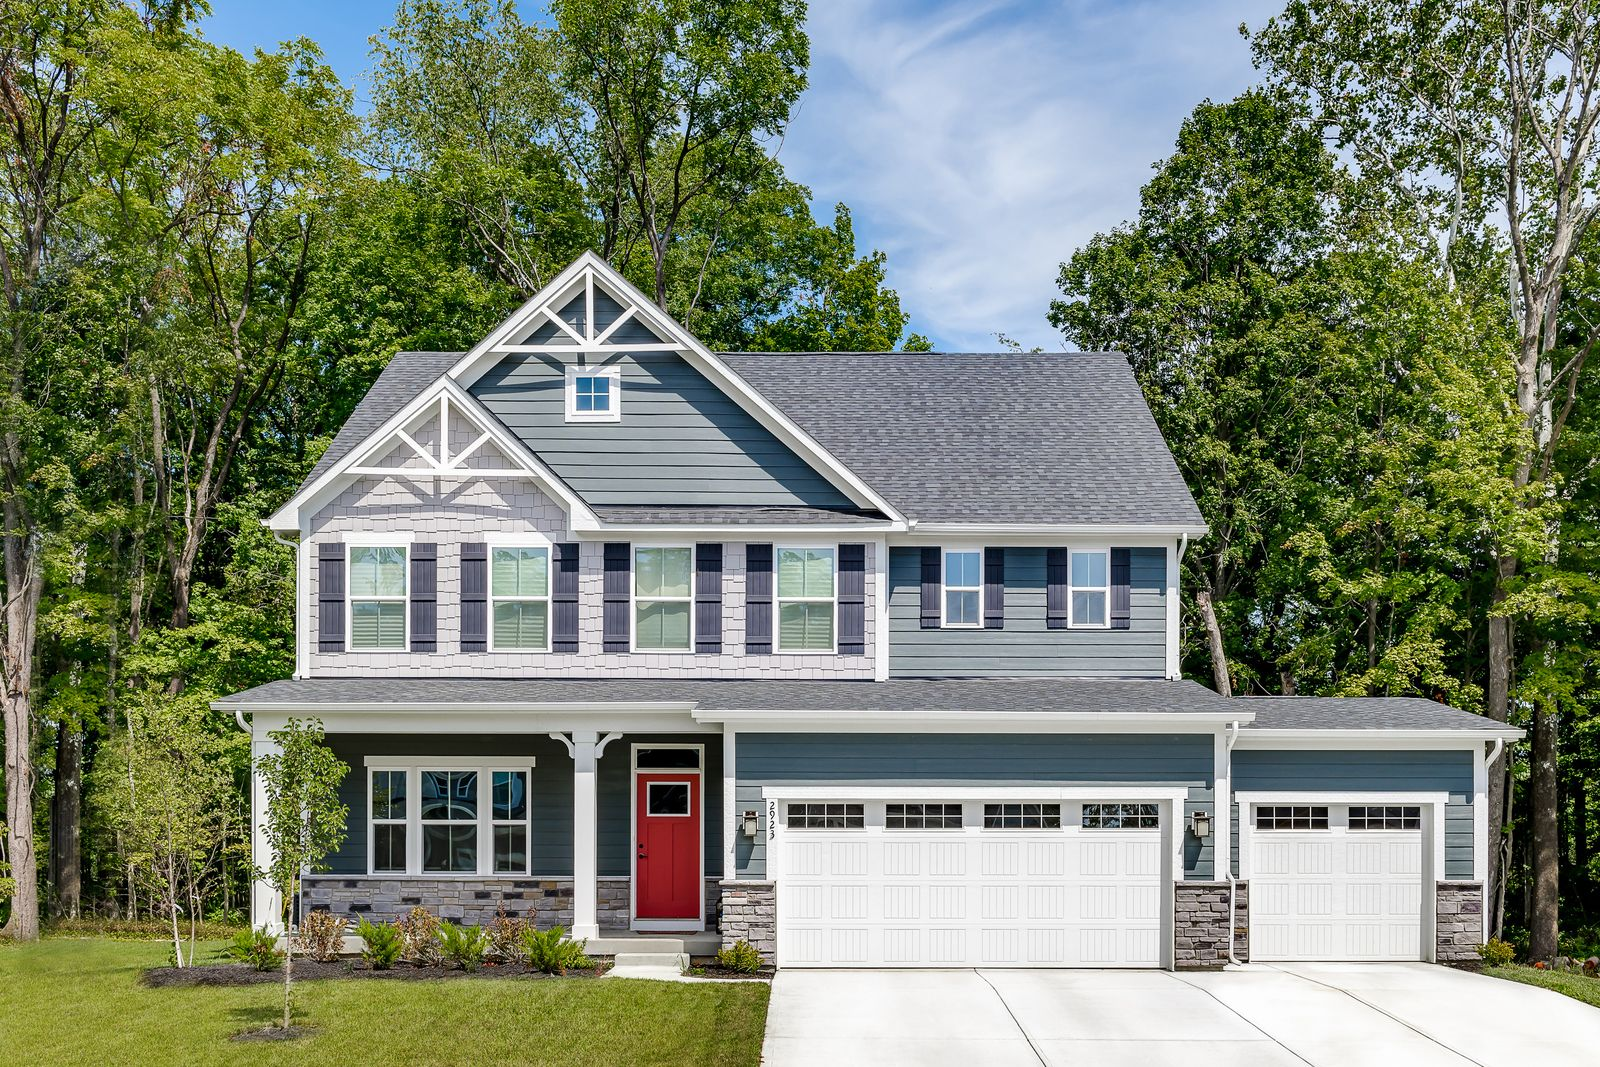 Briar Creek Estates: Basements Included!:Spacious homesites with up to 1/3 acre+.Full basements included & optional 3-car garages.Close to US-31 & Greenwood.Click here tosecure yourFall delivery homesite!